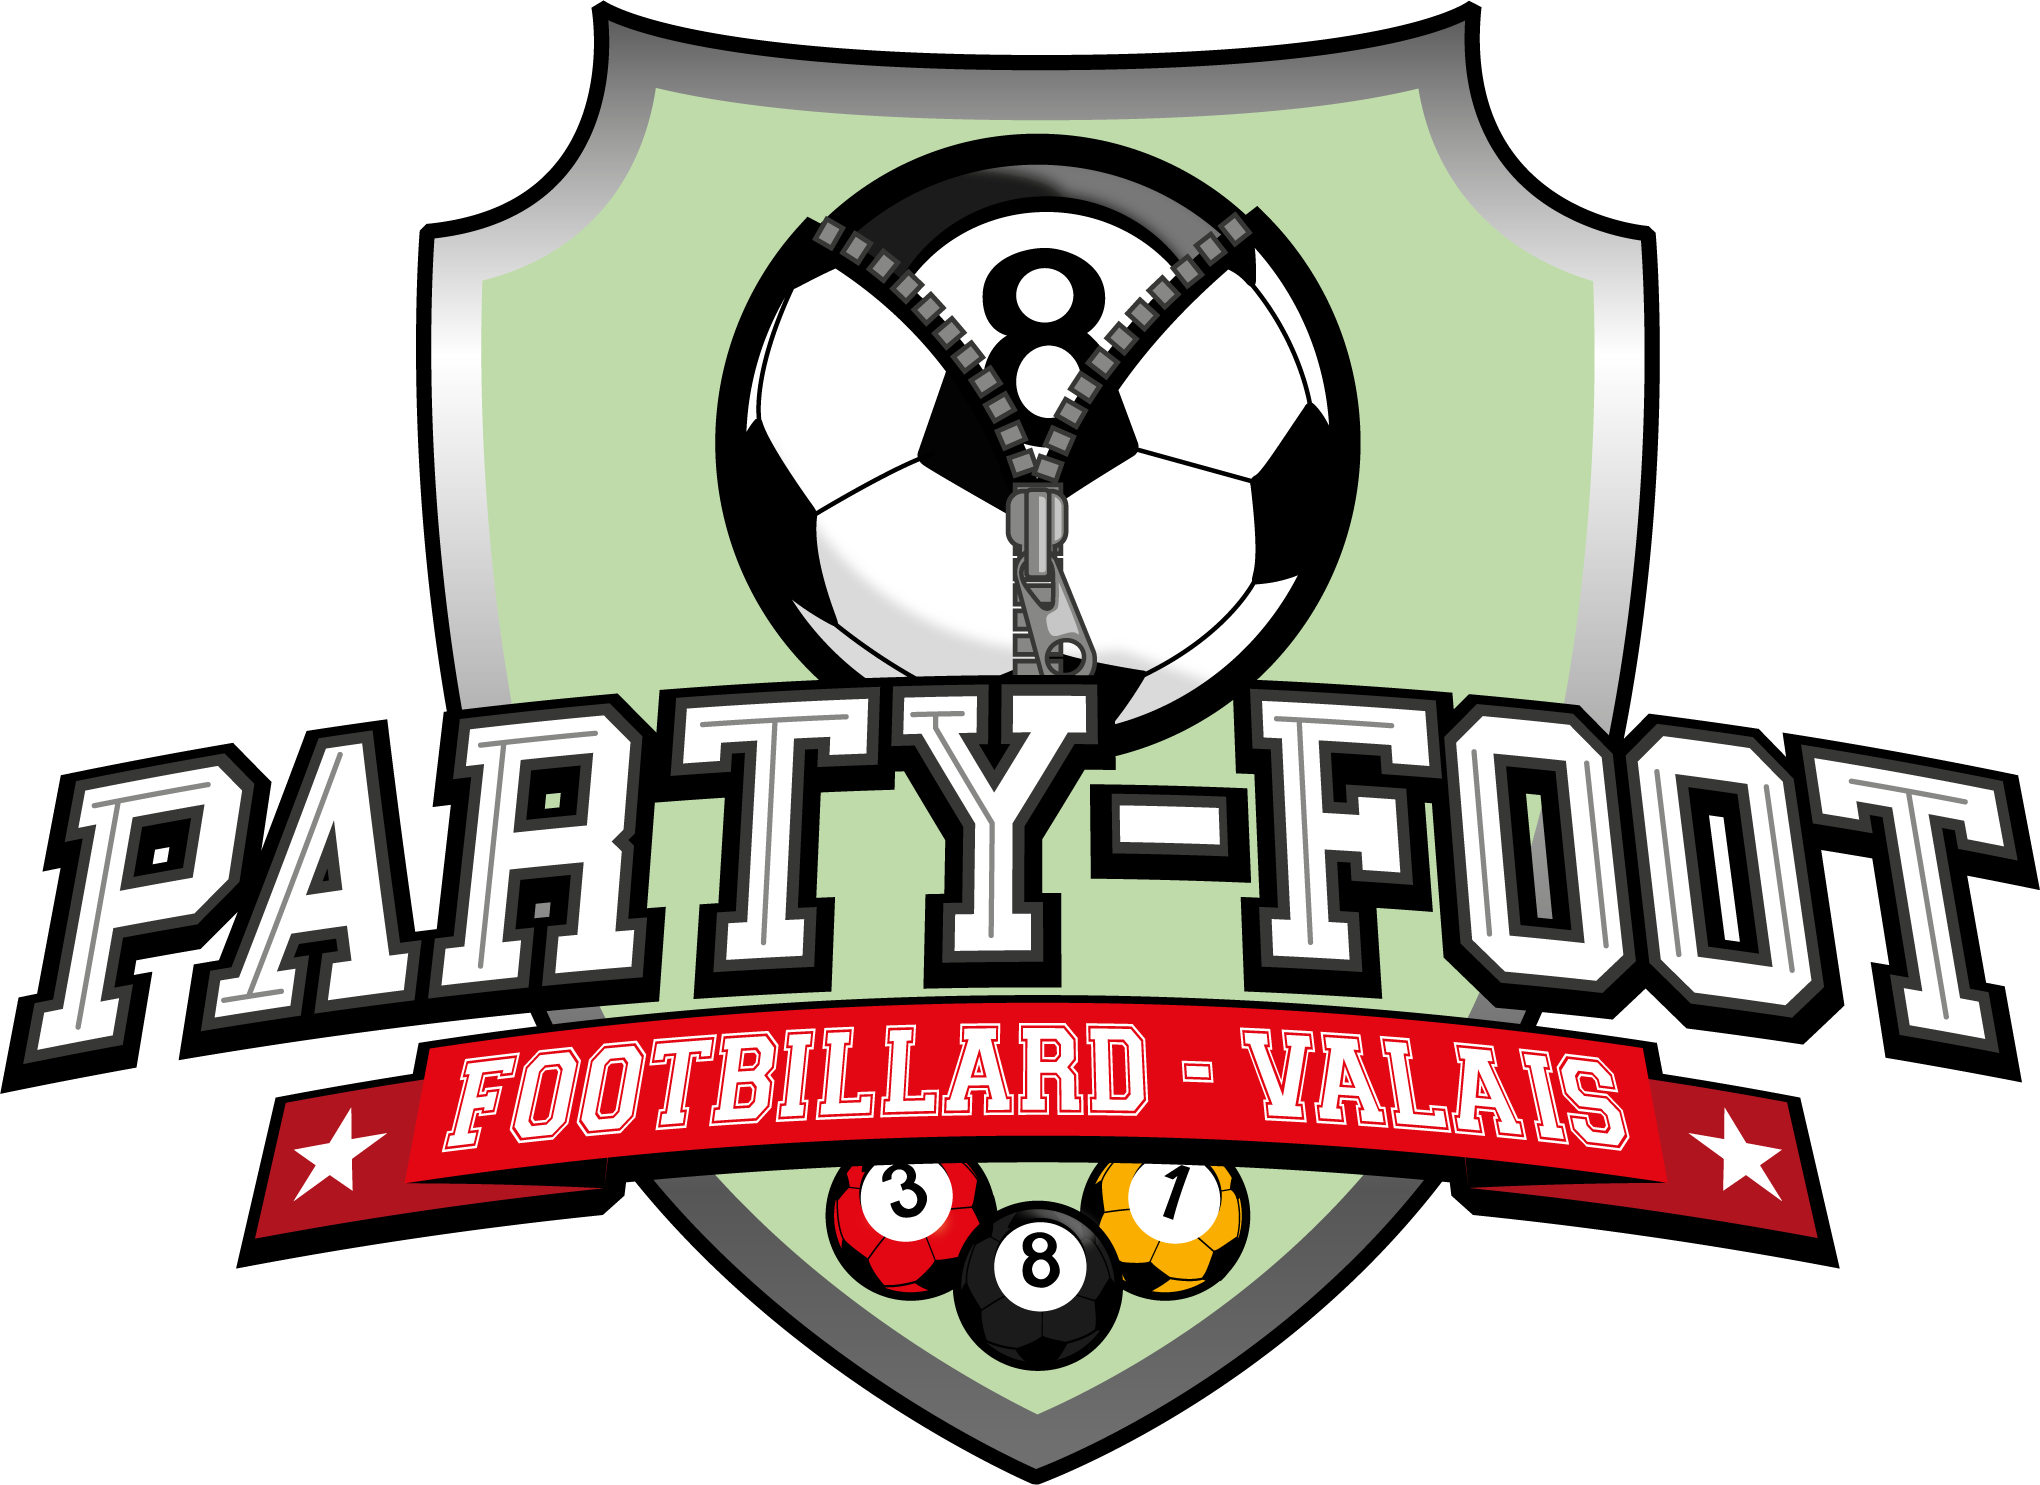 Logo de PARTY-FOOT FOOTBILLARD - VALAIS